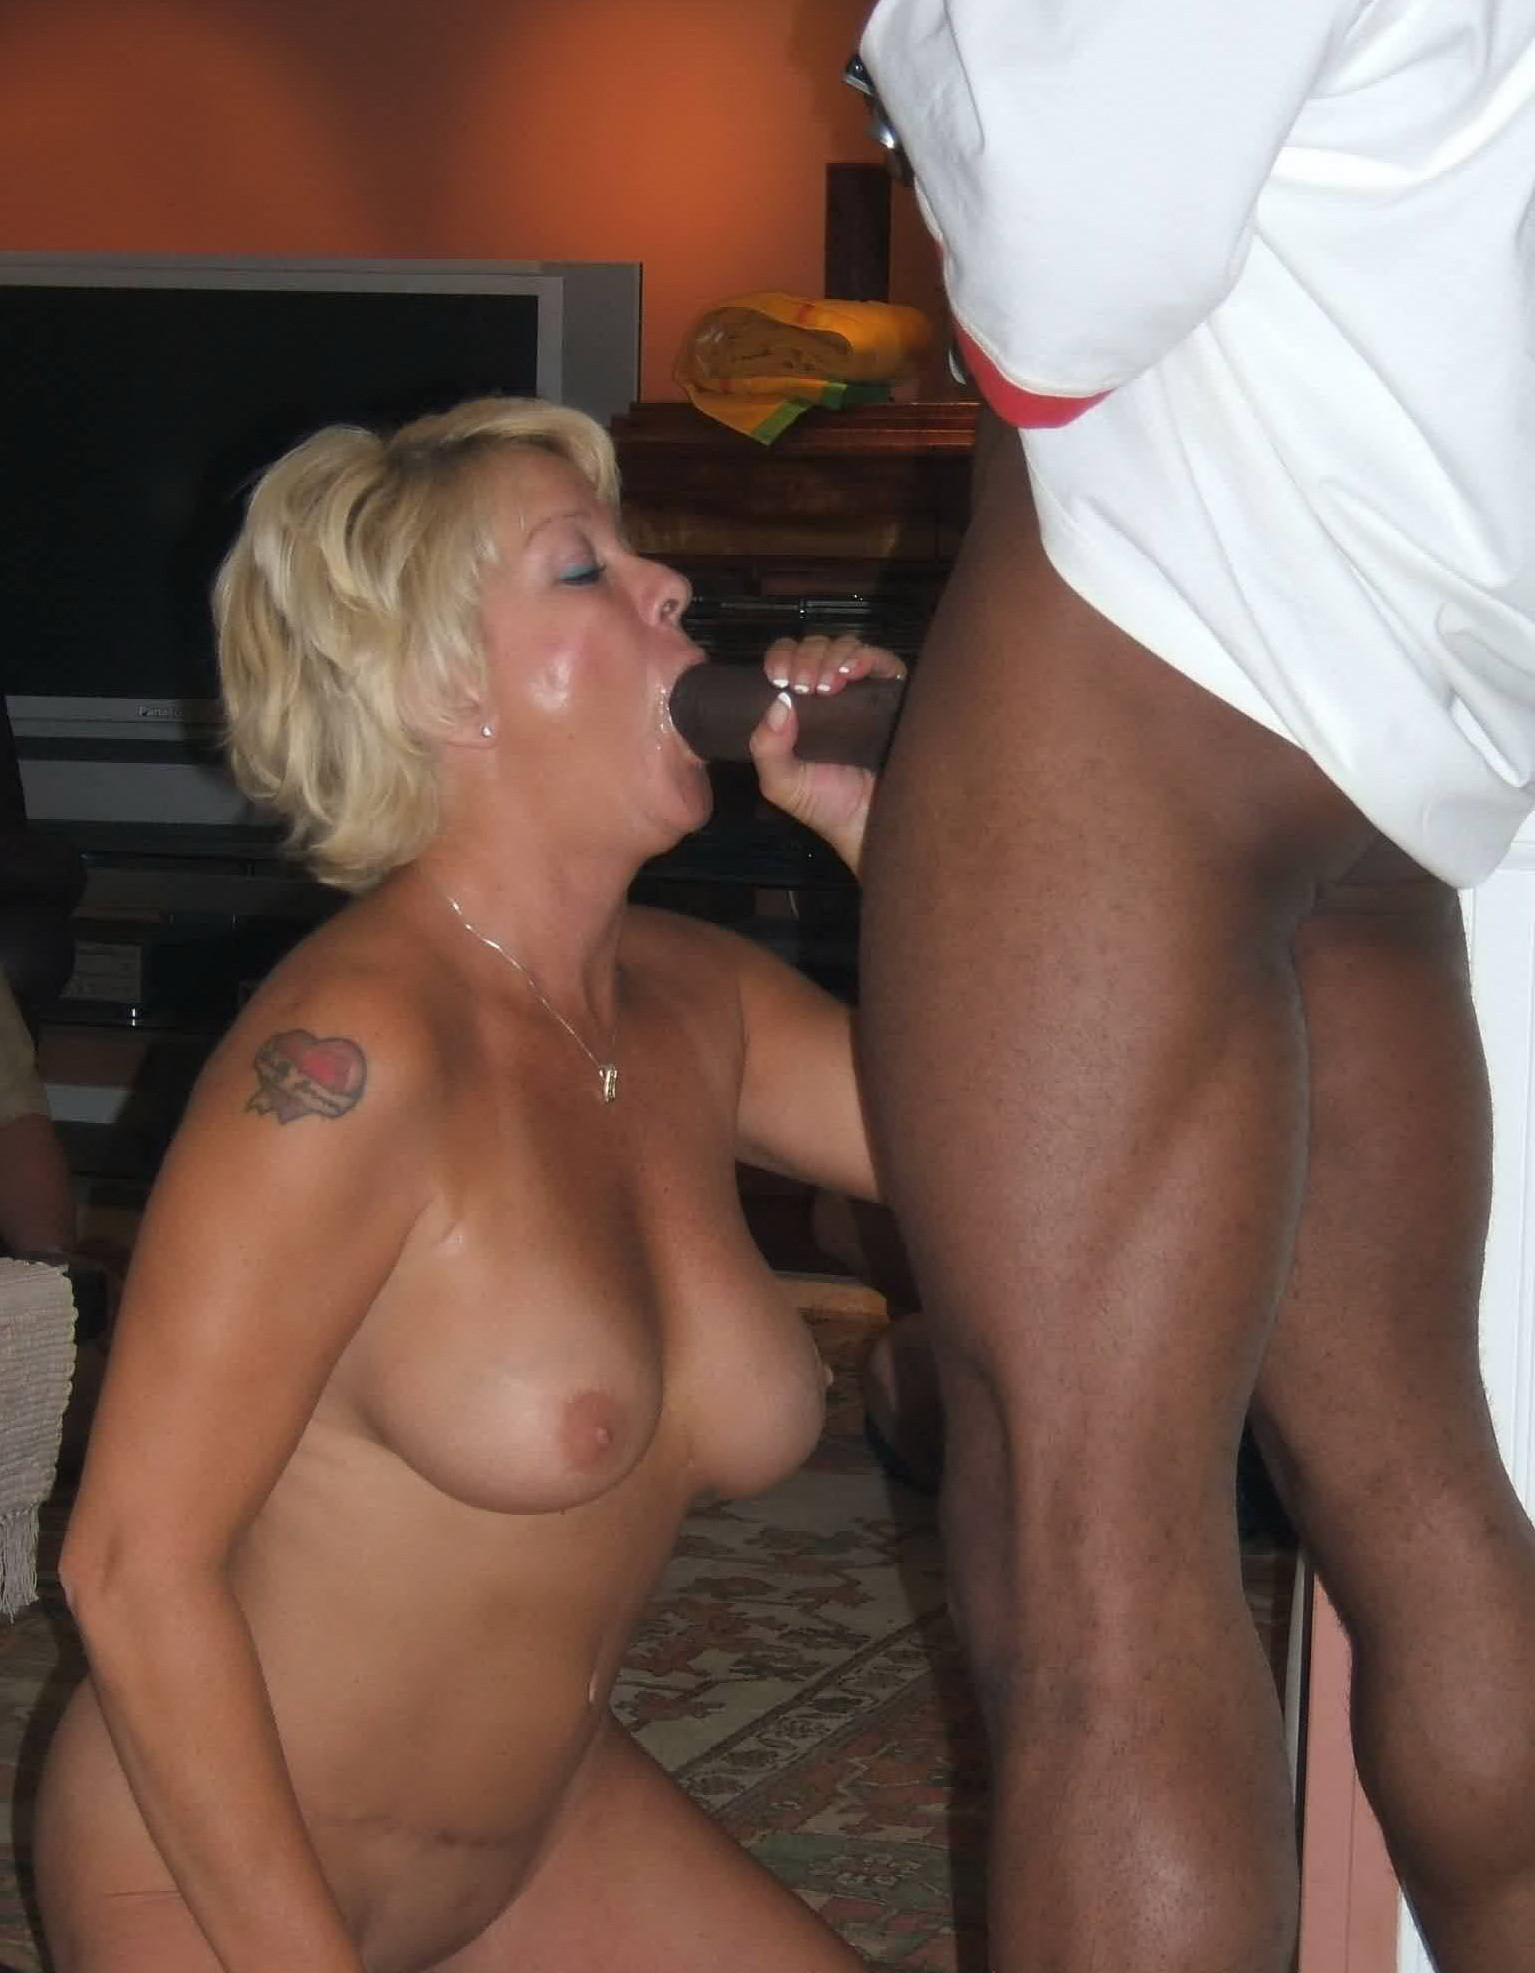 Mad thumbs and amateur interracial